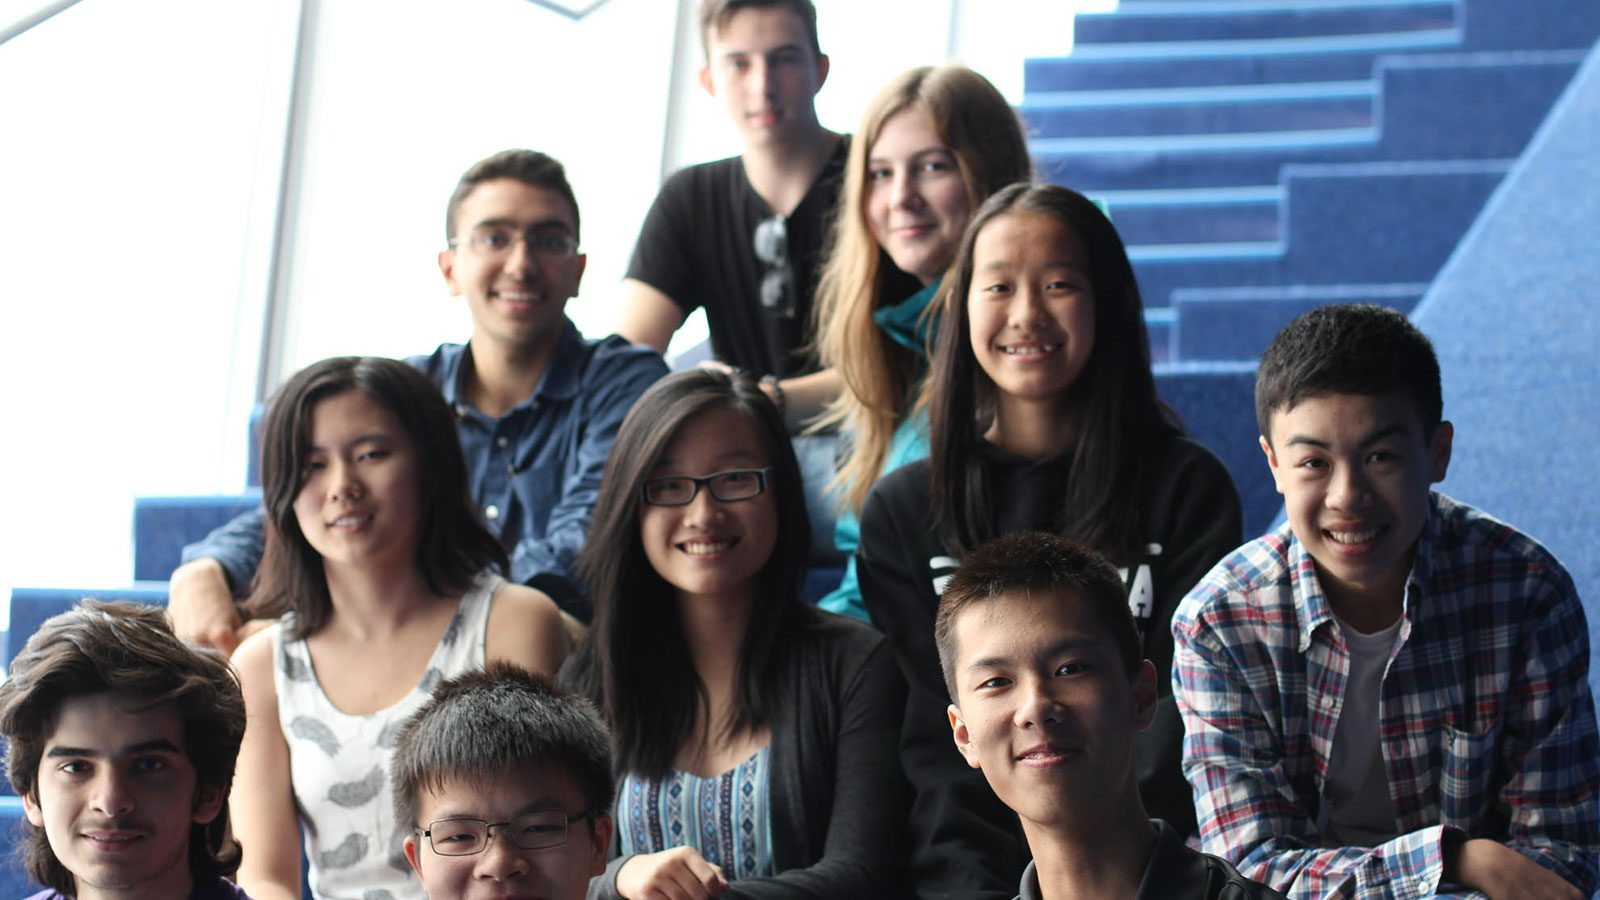 Photo of group of students smiling at camera.